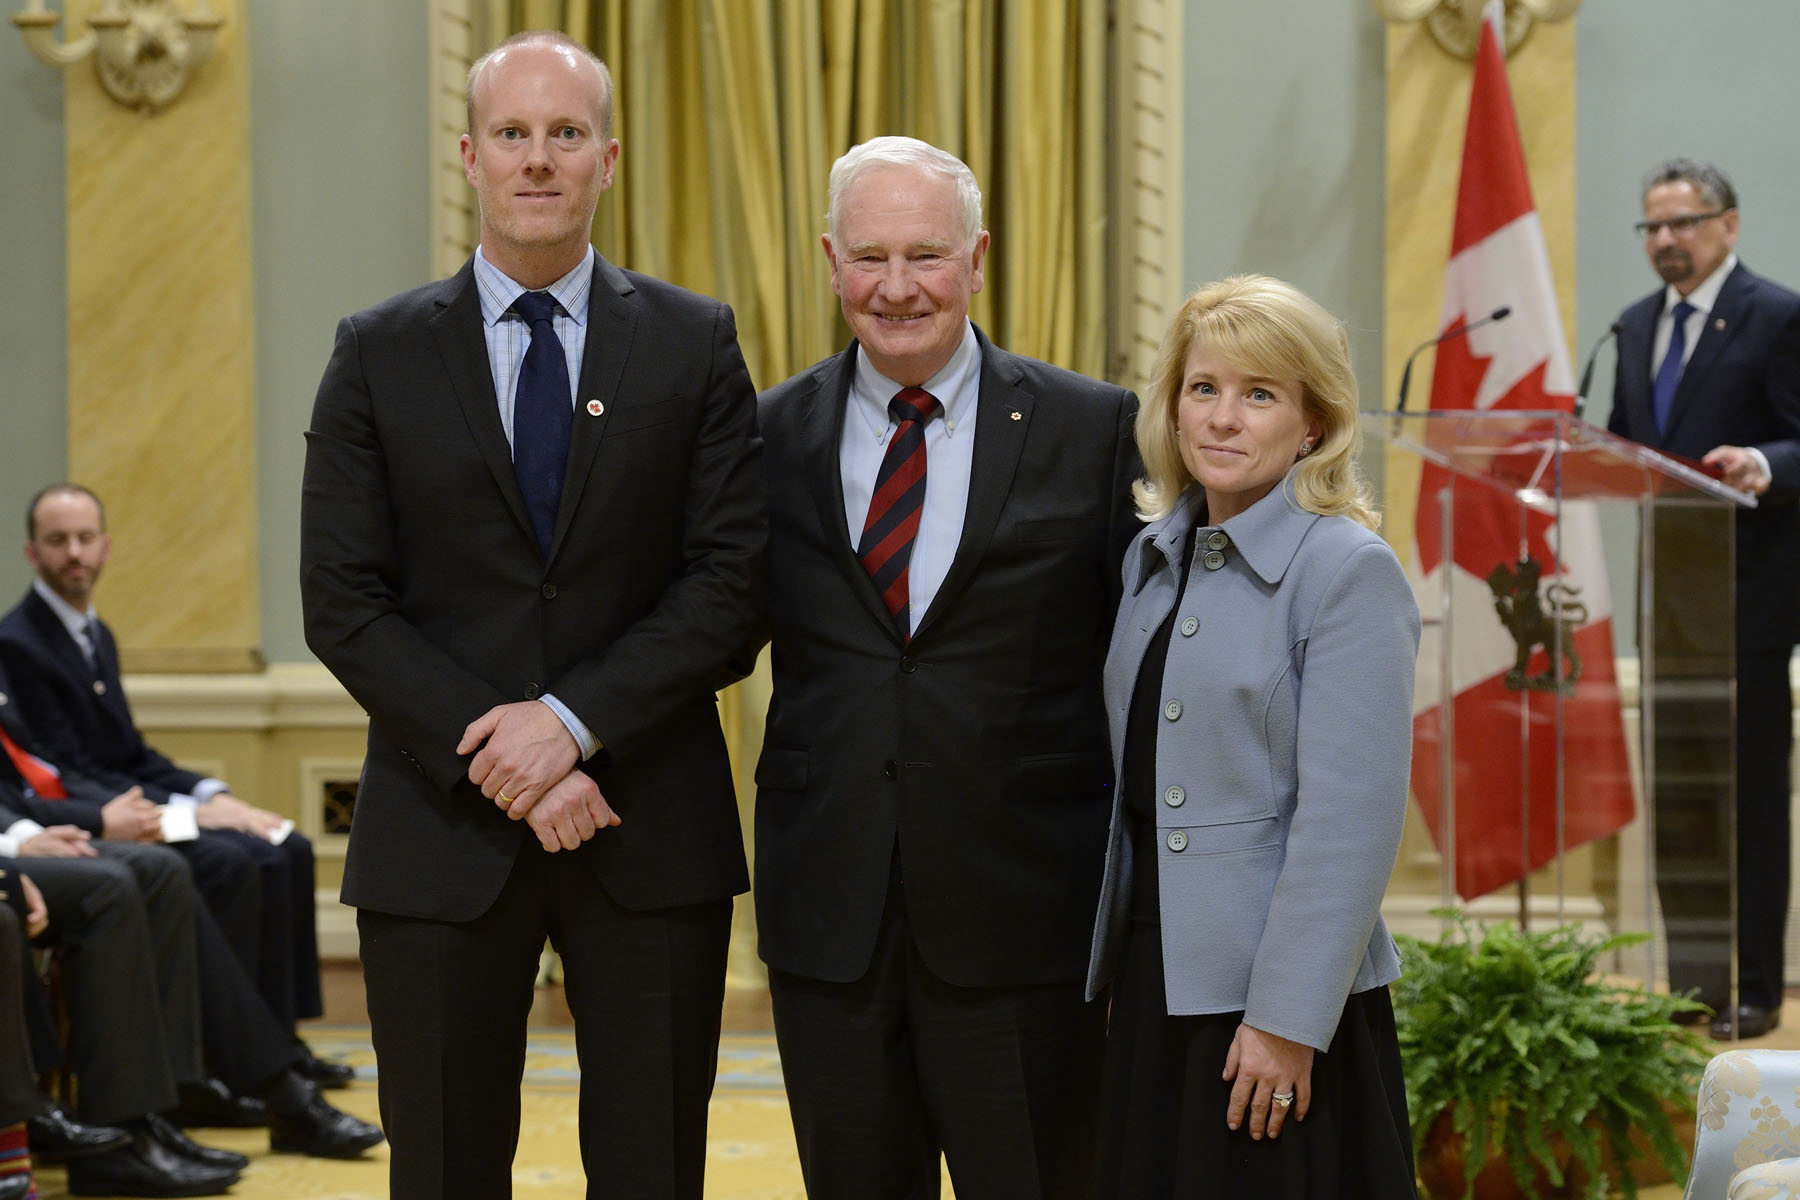 Ms. Shana Kelley (University of Toronto)and Mr. Edward H. Sargent, (University of Toronto) received the Brockhouse Canada Prize for Interdisciplinary Research in Science and Engineering.